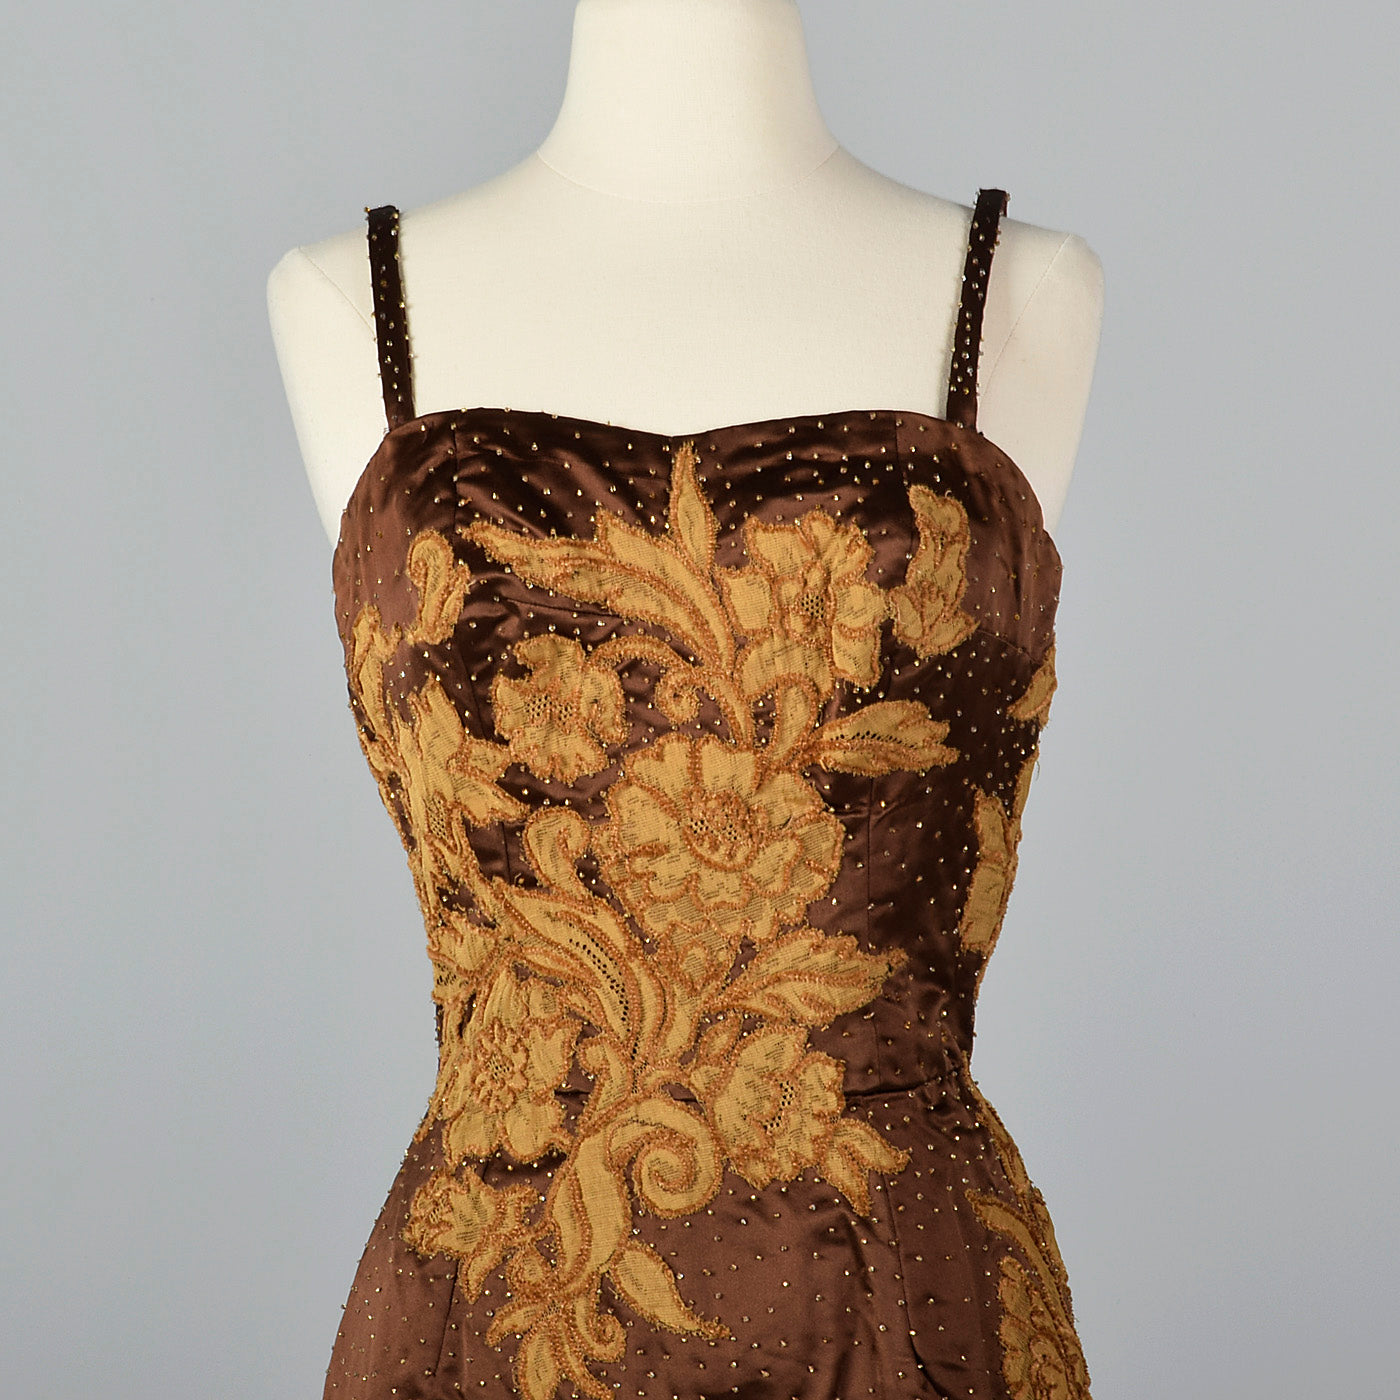 1950s Brown Dress with Lace Applique